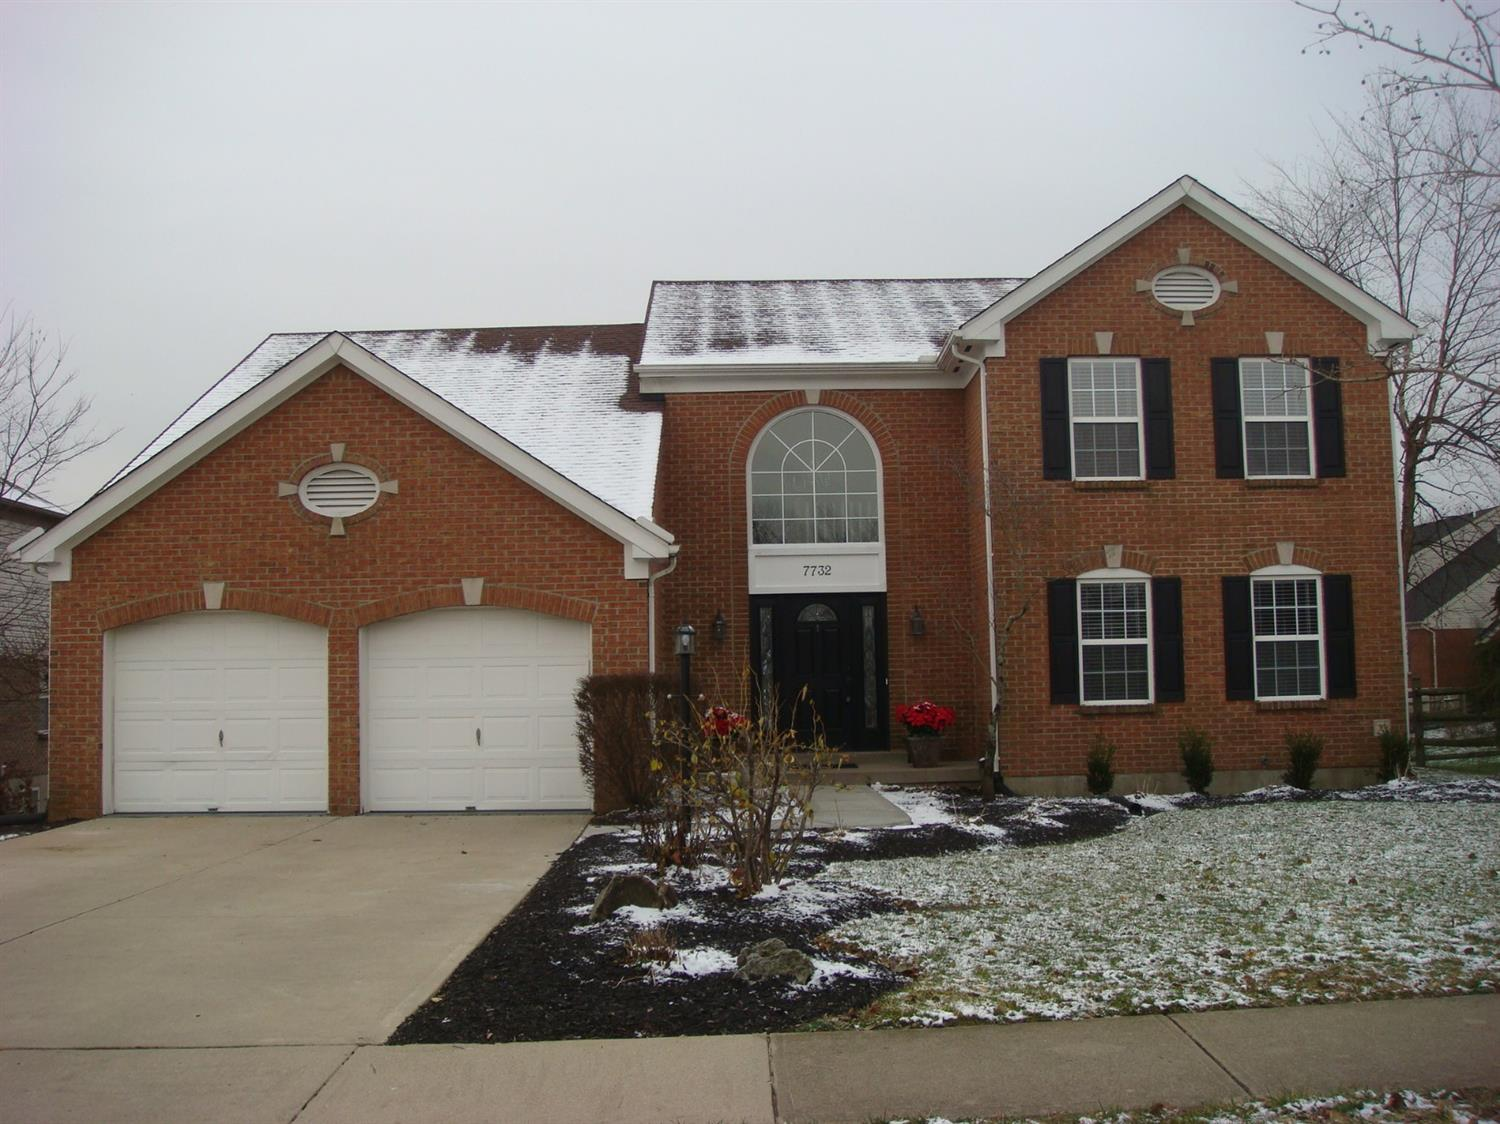 7732 W Lake Dr, West Chester, OH 45069 - MLS 1604653